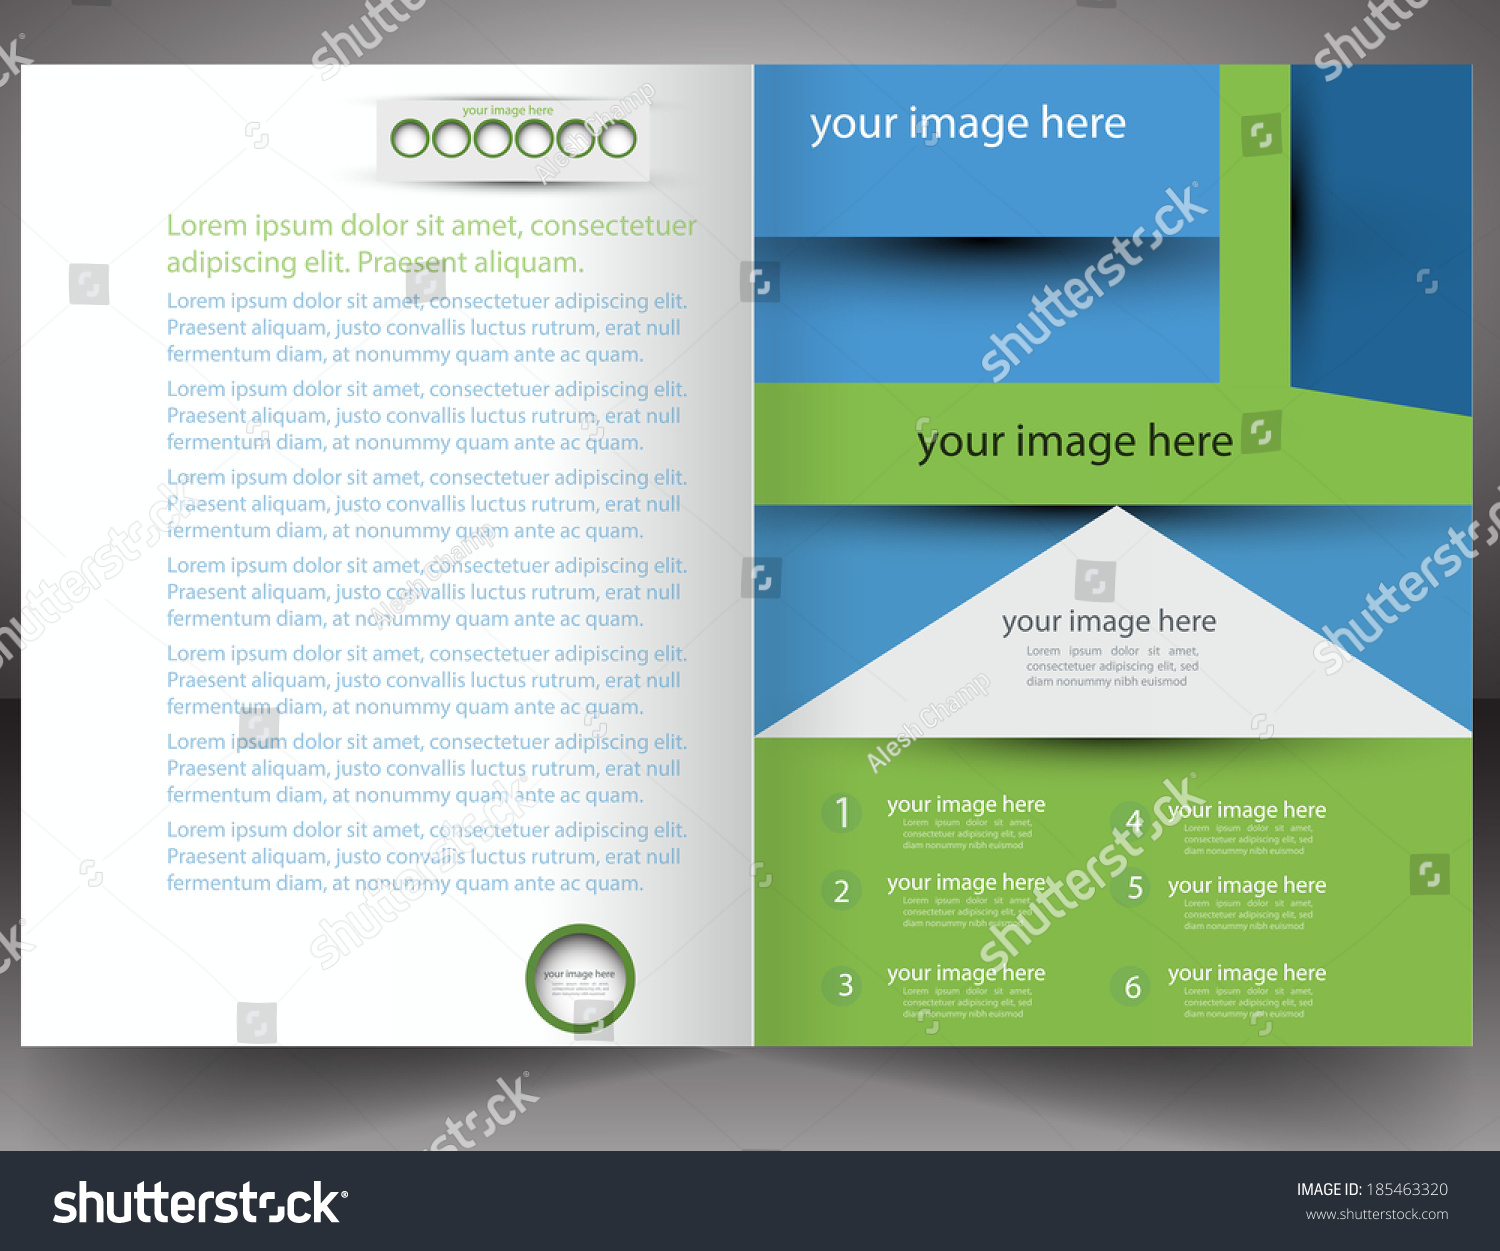 professional business flyer template brochure 185463320 larastock professional business flyer template brochure